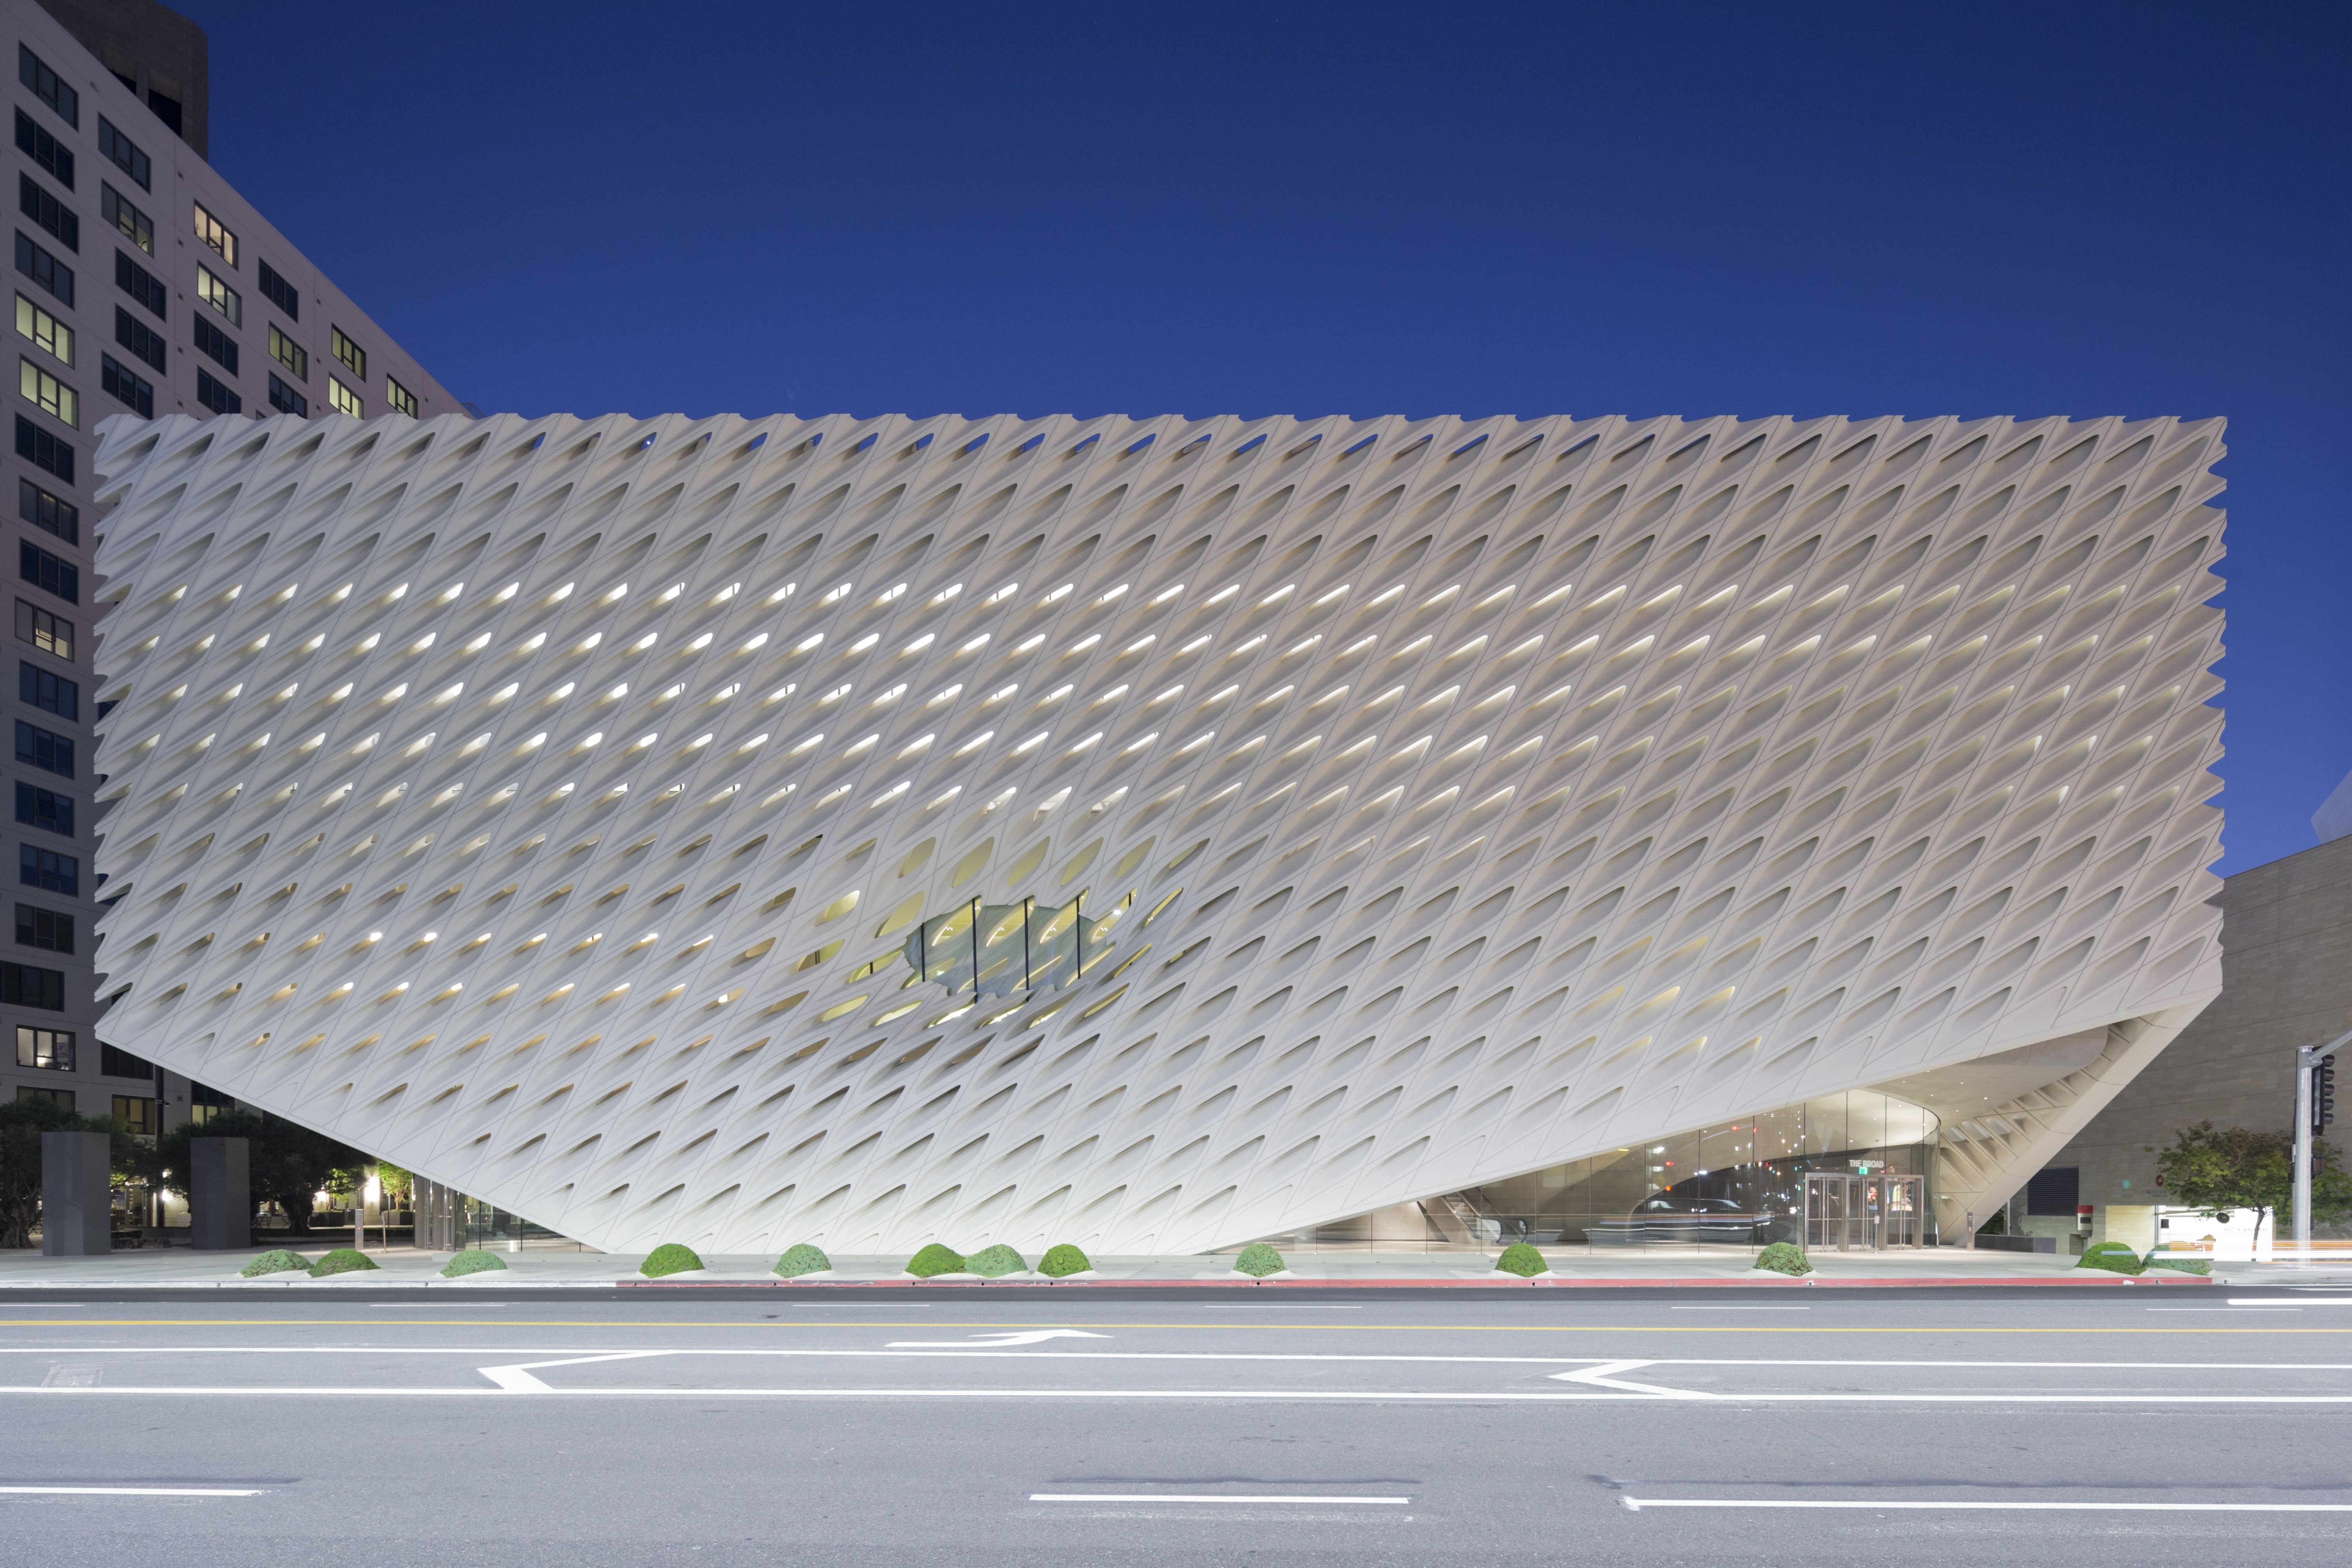 7 Stunning Structures By Diller Scofidio + Renfro | Architectural Digest